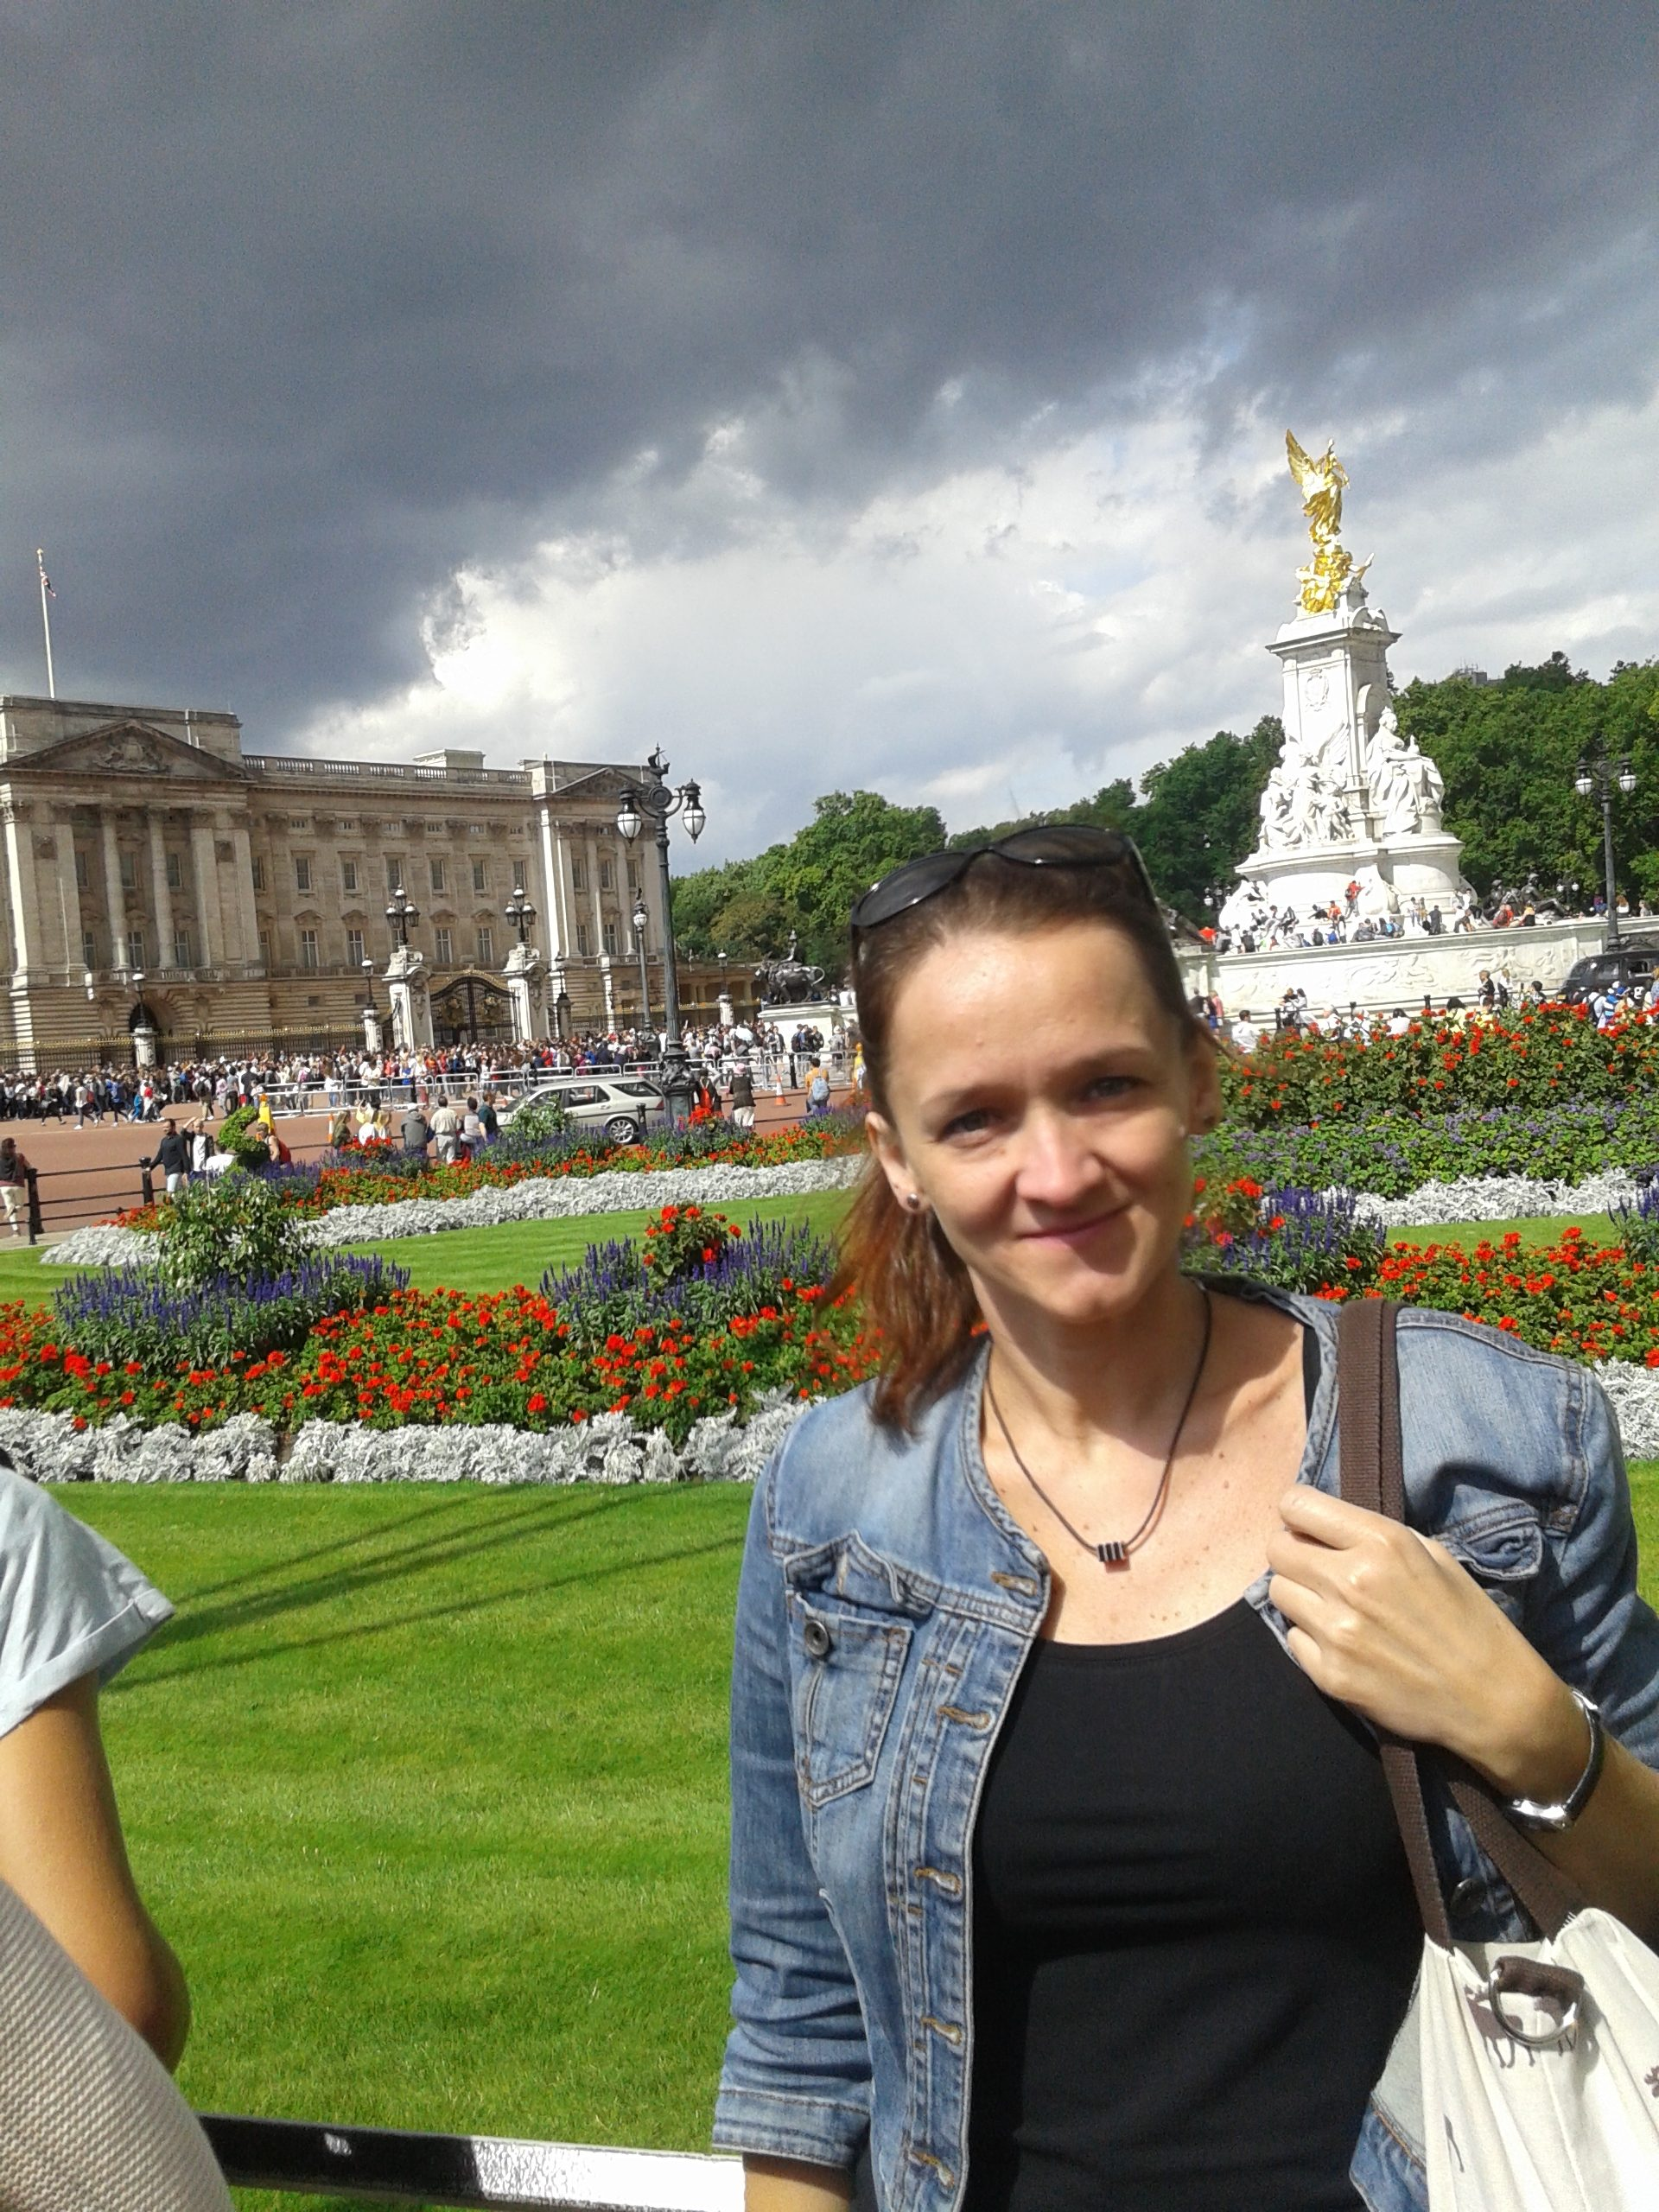 London - Buckingham Palace,